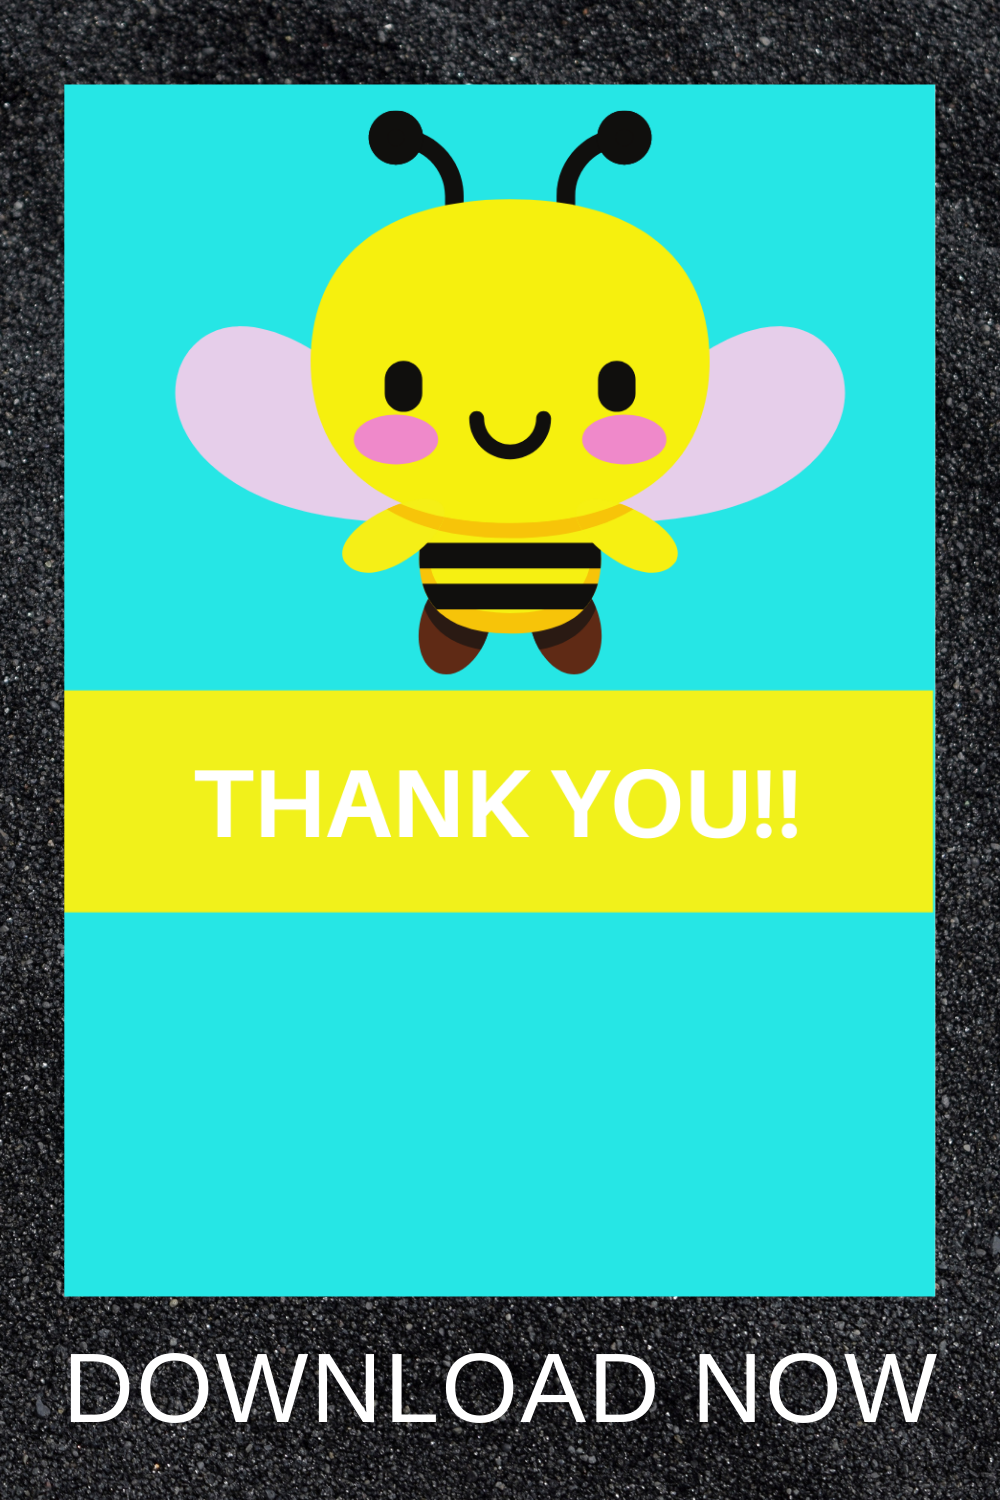 free download: bumble bee thank you card for a birthday party